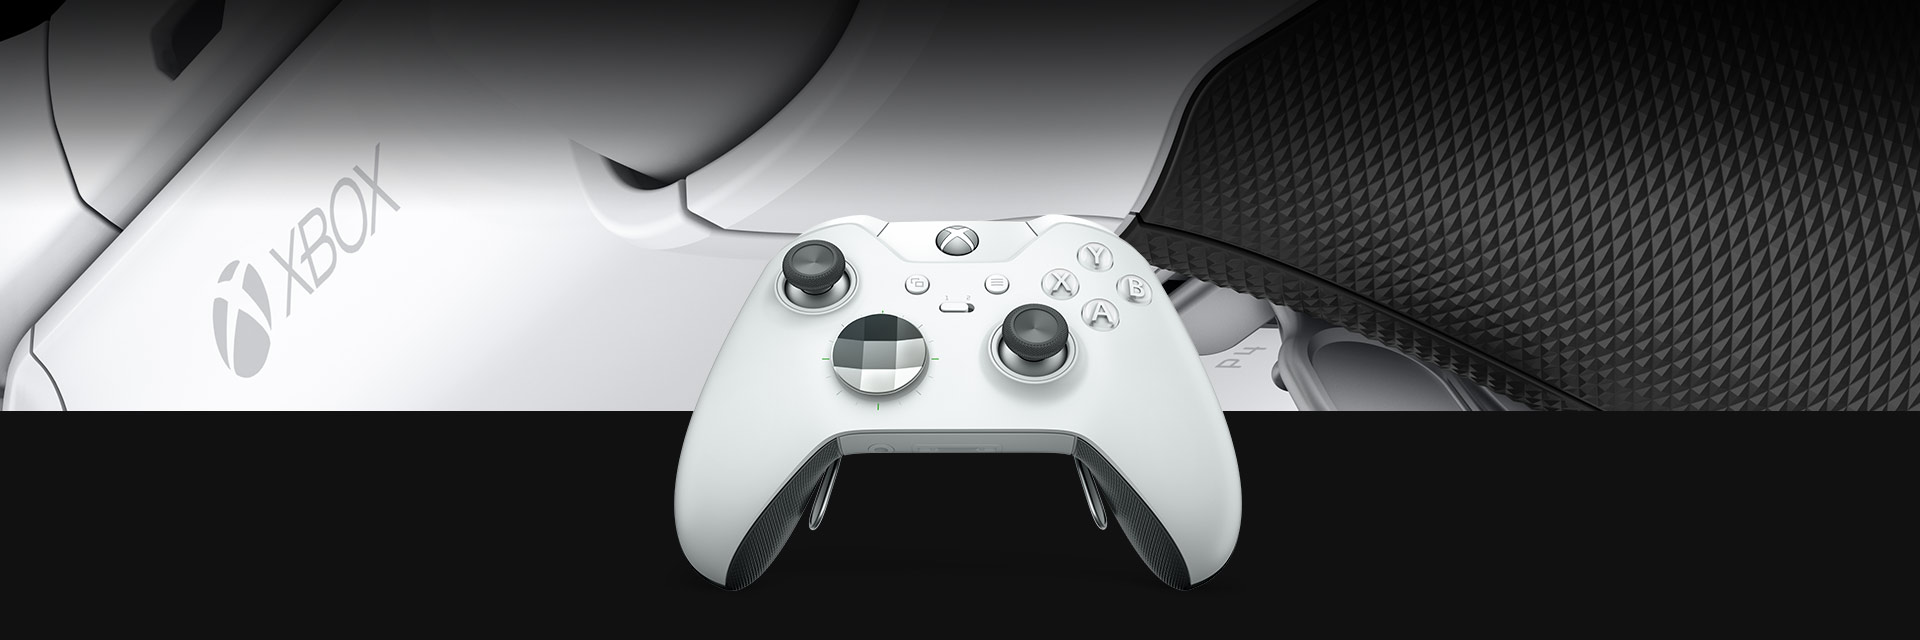 hight resolution of front view of the xbox one white elite wireless controller